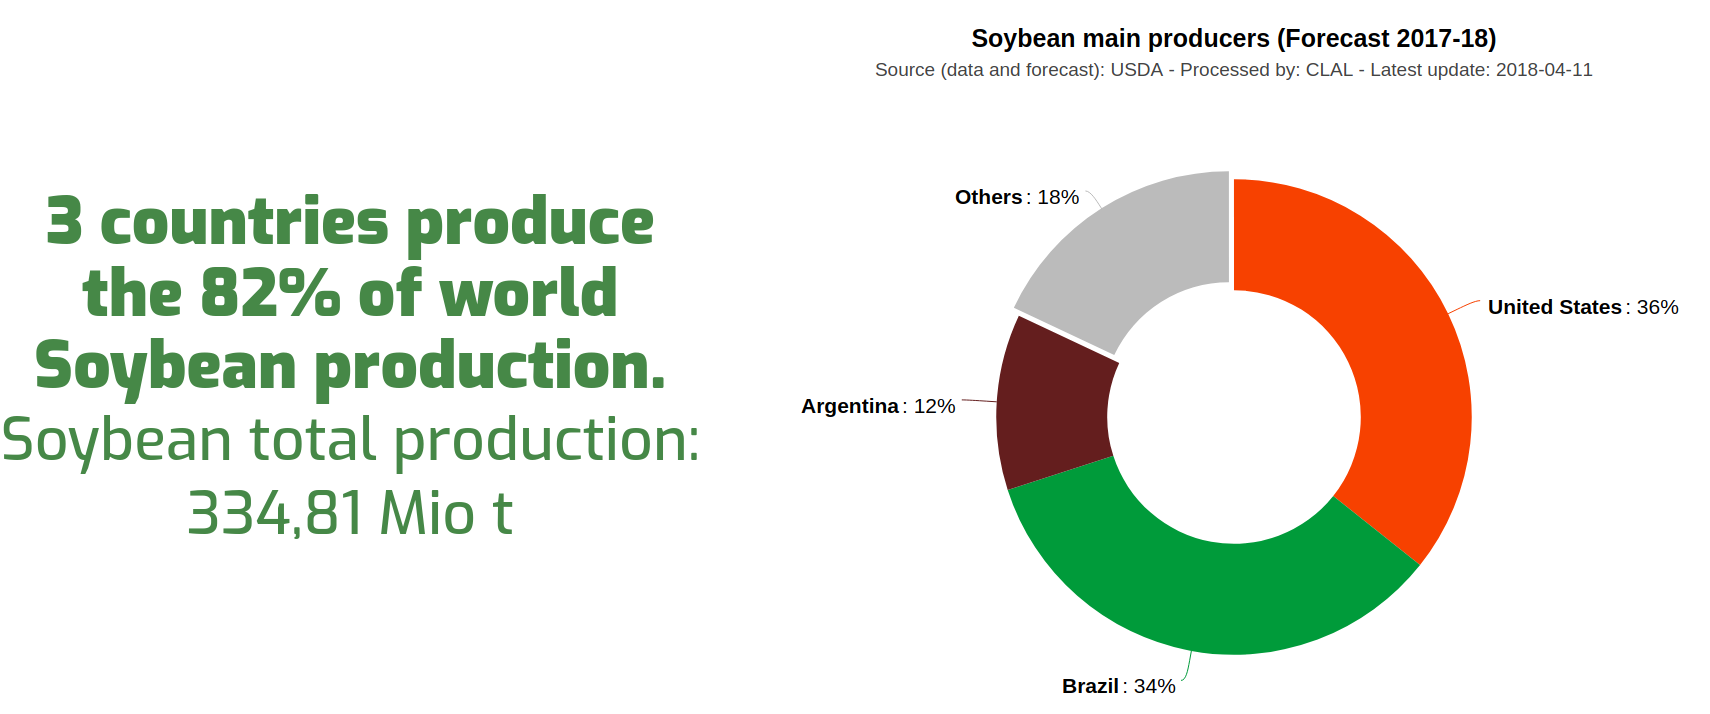 Soybean Production share